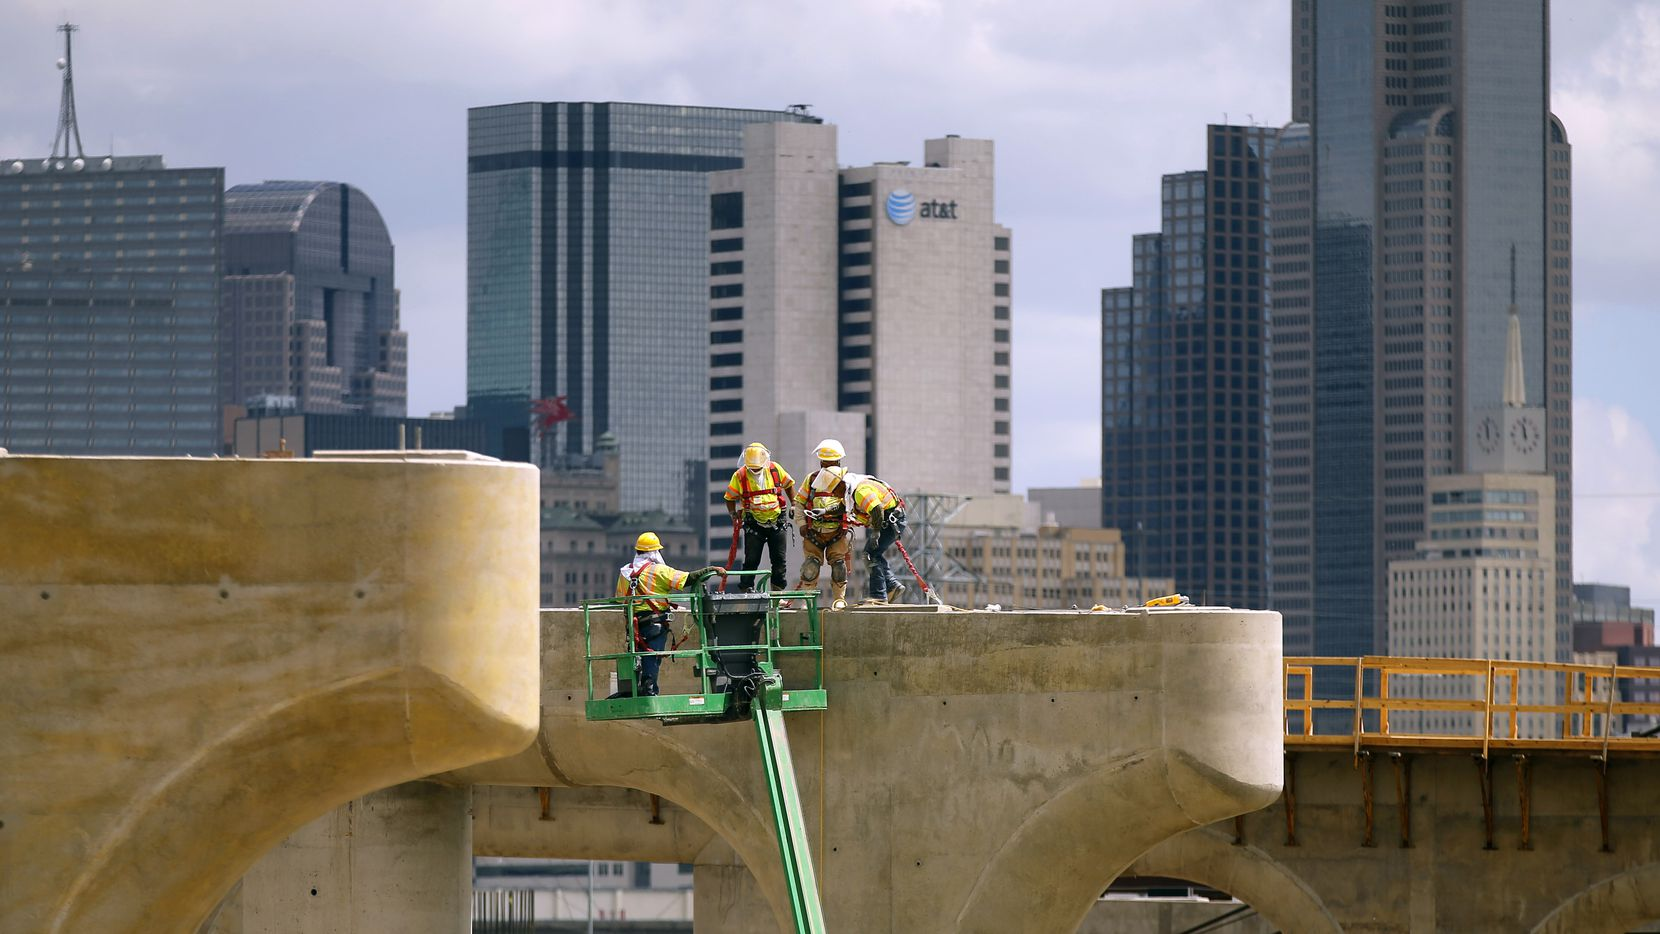 In 2014, construction crews worked atop the bridge support columns and tops of the new northbound Interstate 35E bridge leading to downtown Dallas, a part of the massive Dallas Horseshoe Project. The nearly $800 million design-build project was worked on by Pegasus Link Contractors, a joint venture between Fluor and Balfour Beatty.